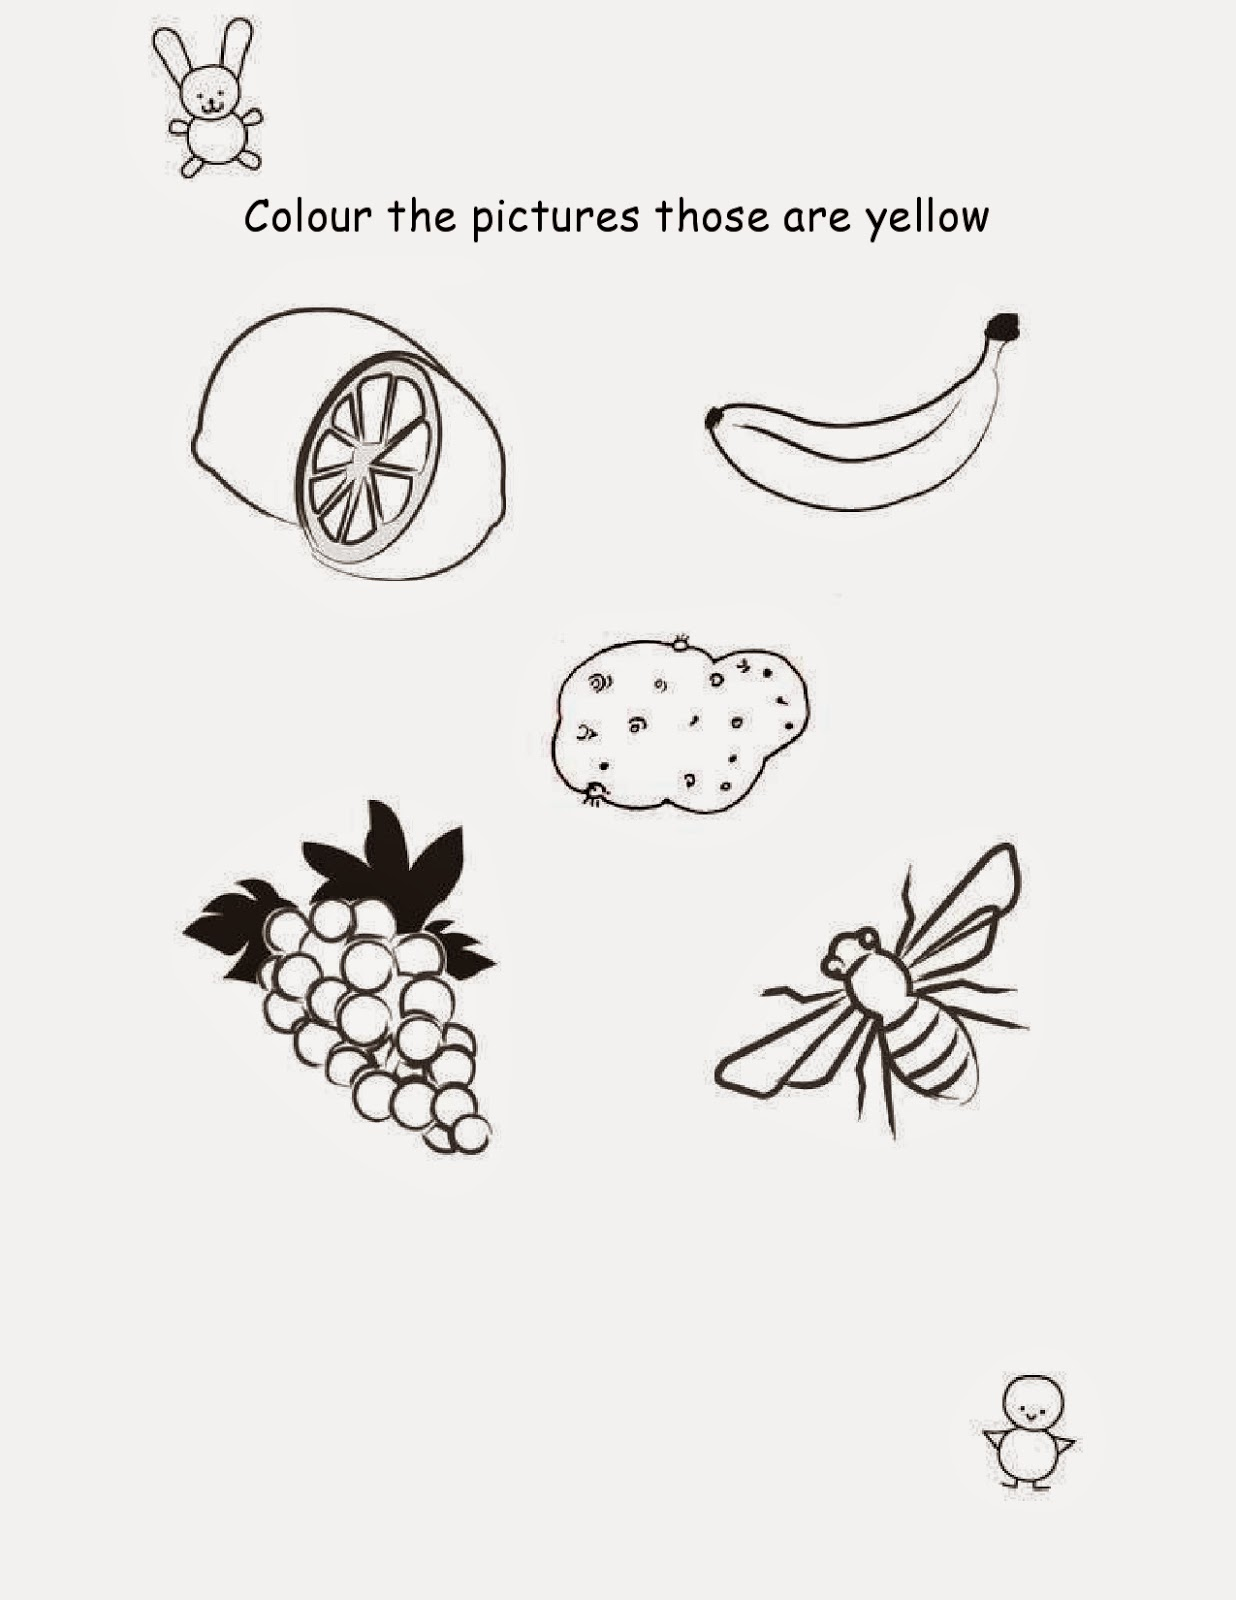 Worksheet Worksheet For Nursery Class my life as a maa project worksheets here are some for class nursery subject colours